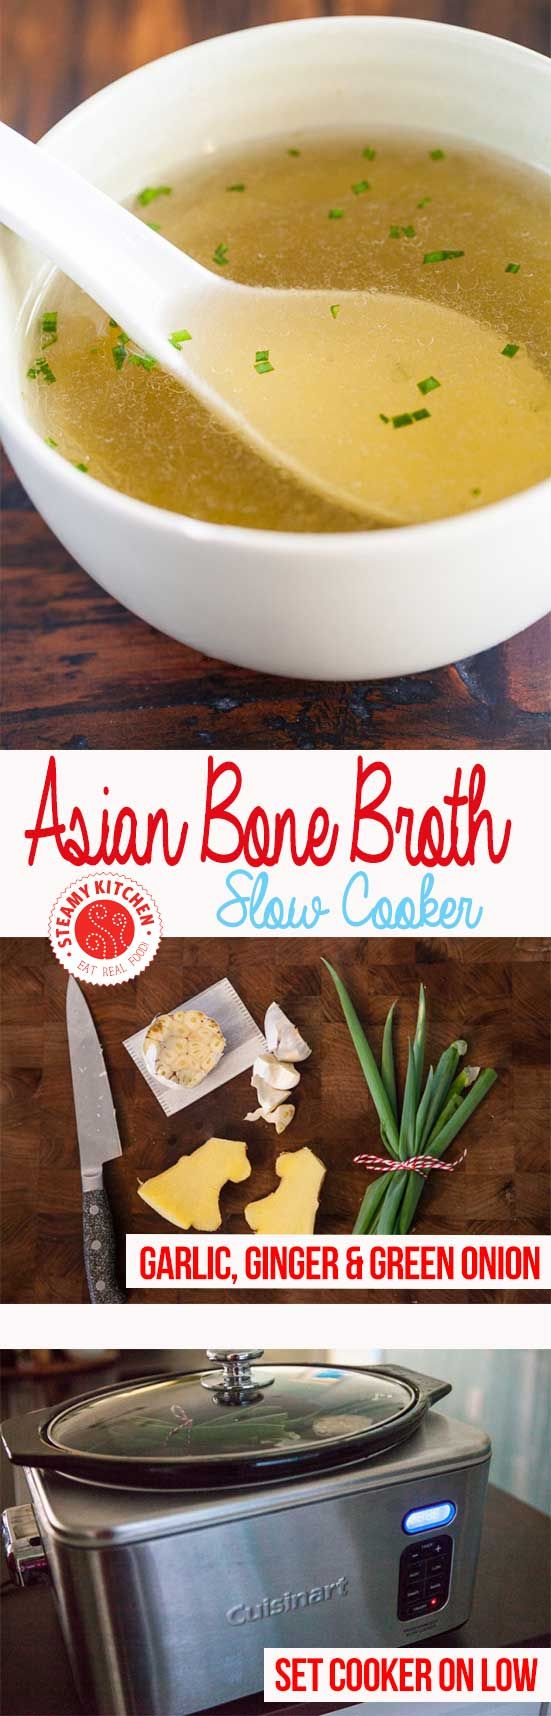 Asian Style Slow Cooker Bone Broth Recipe by Jaden of Steamy Kitchen ~ https://steamykitchen.com #soup #recipe #lunch #easy #recipes